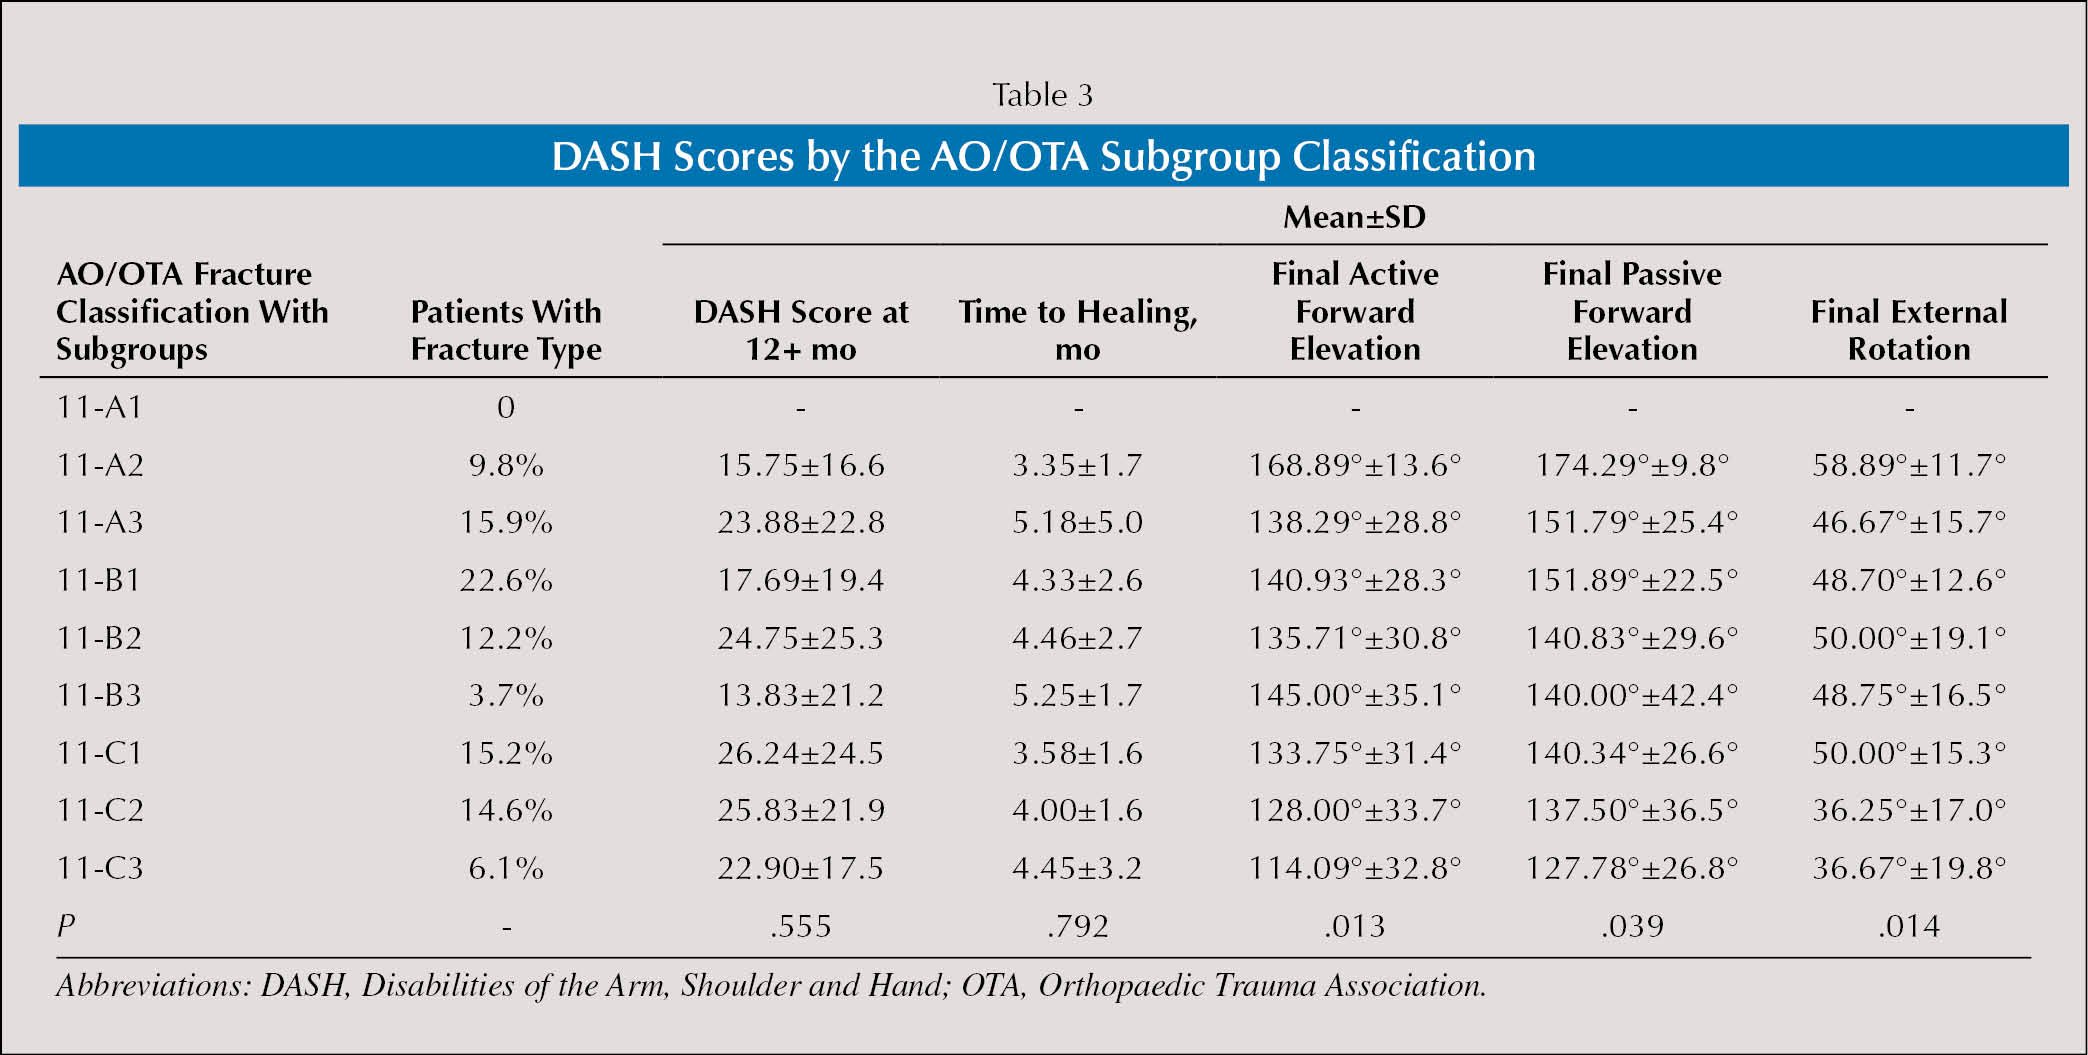 DASH Scores by the AO/OTA Subgroup Classification